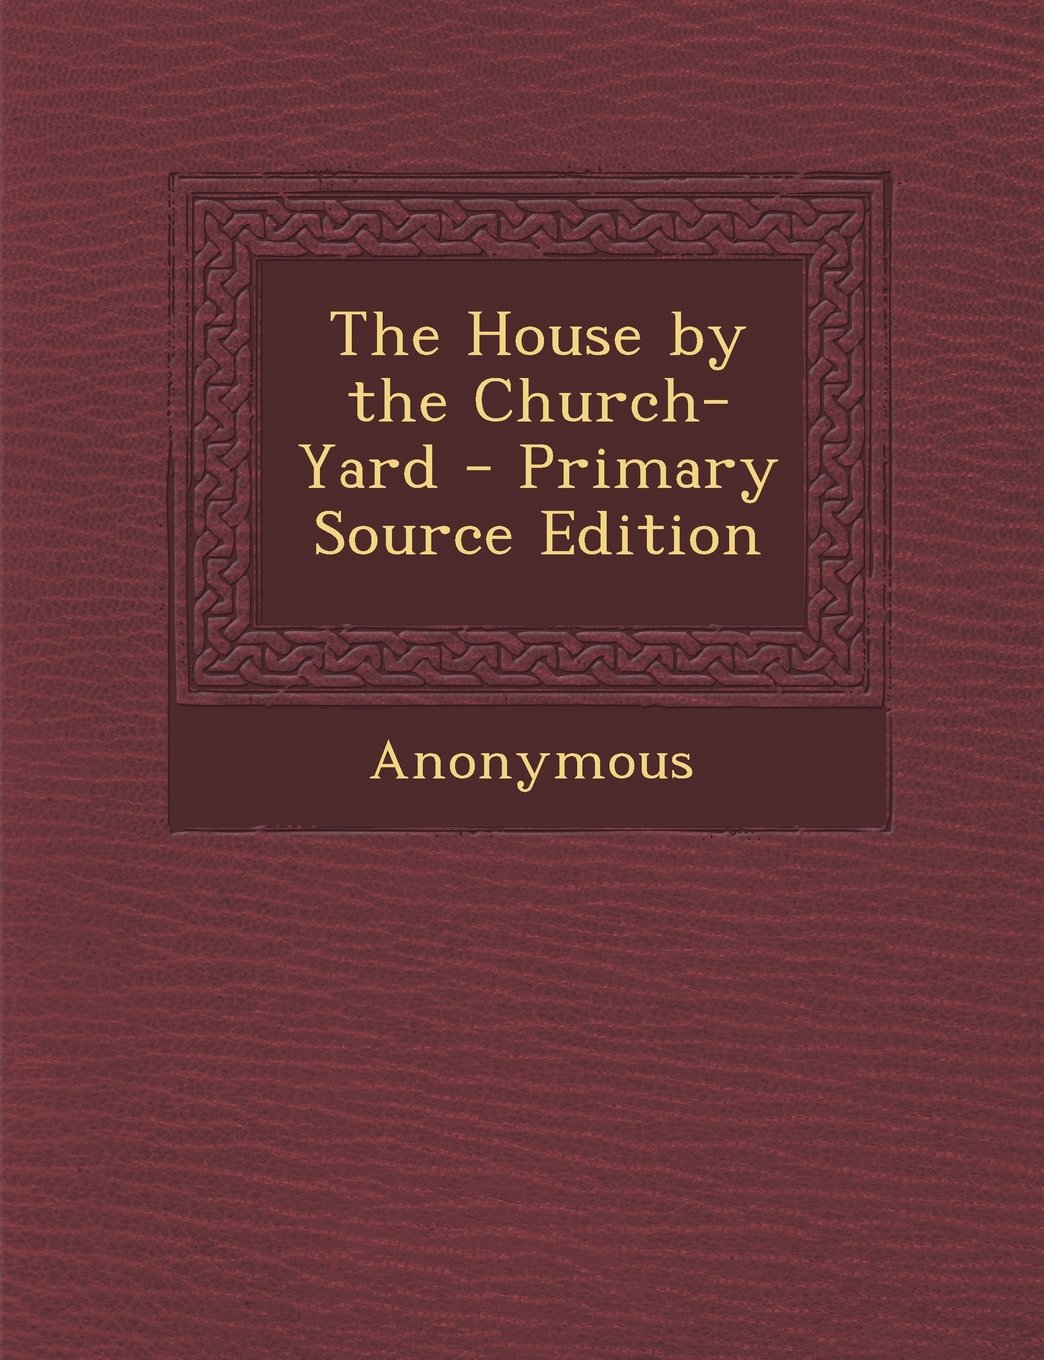 Read Online The House by the Church-Yard - Primary Source Edition pdf epub